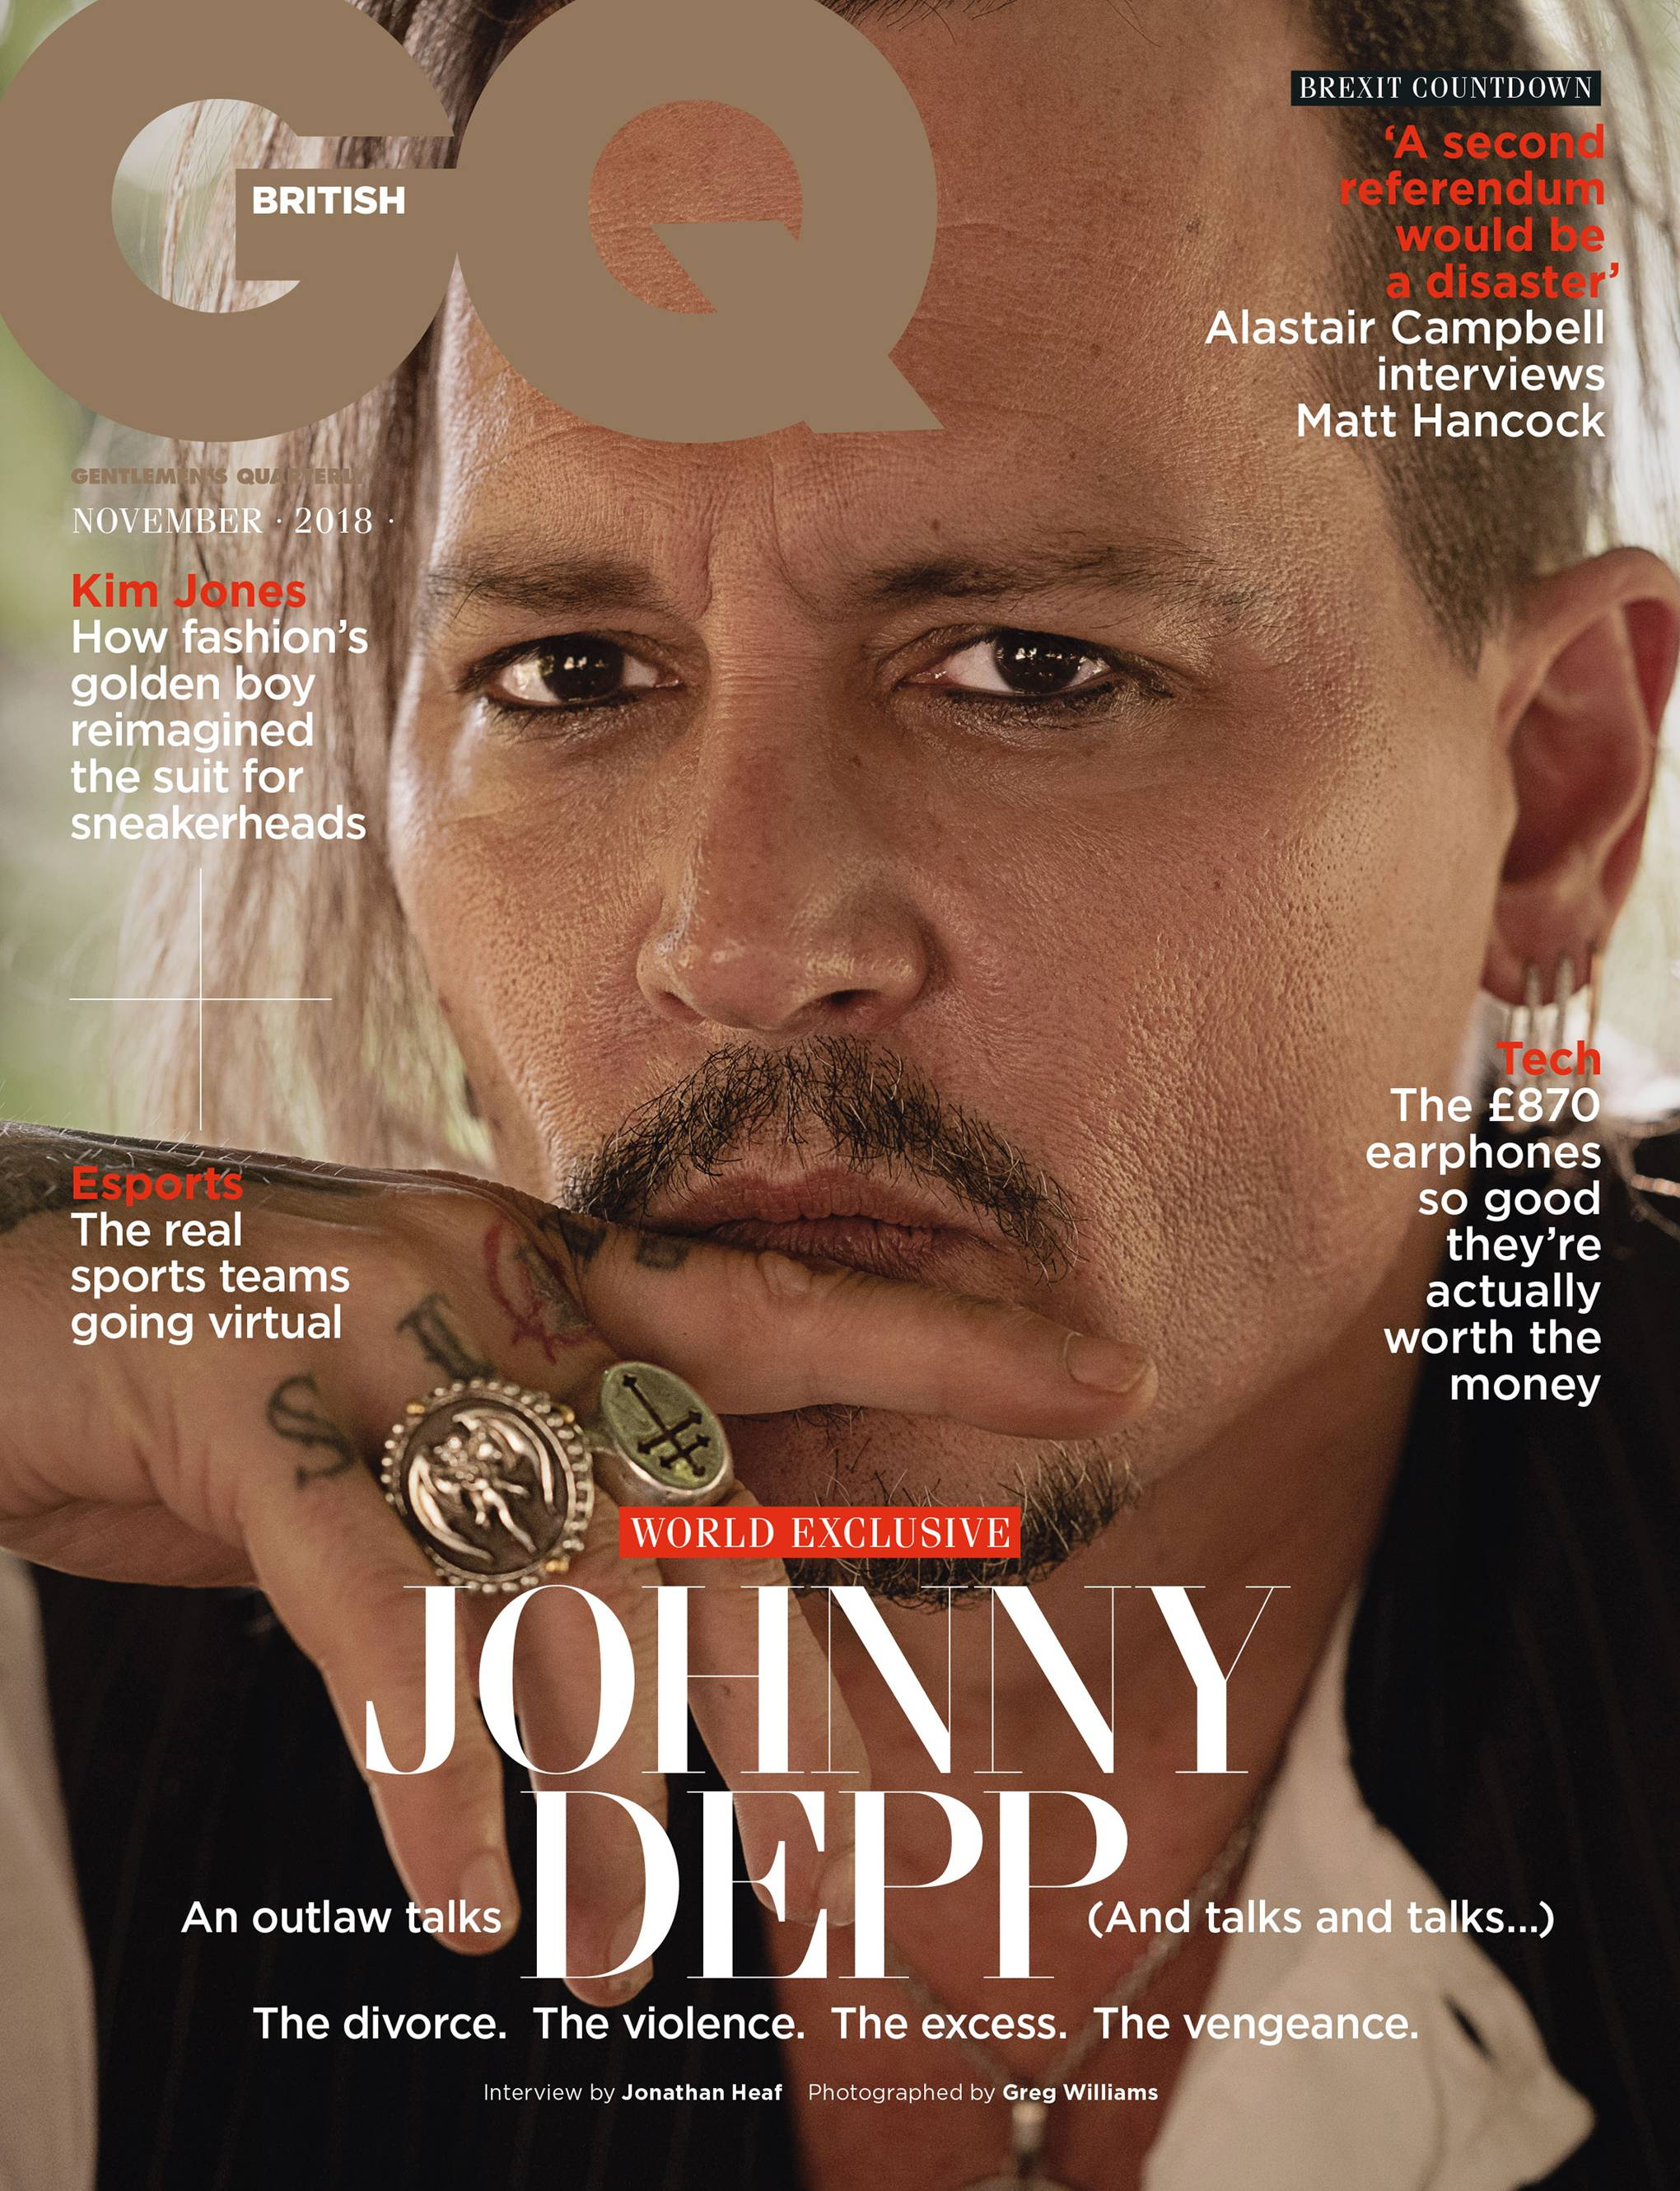 d3b9887ee4e Johnny Depp interview 2018  A world exclusive discussion with the actor